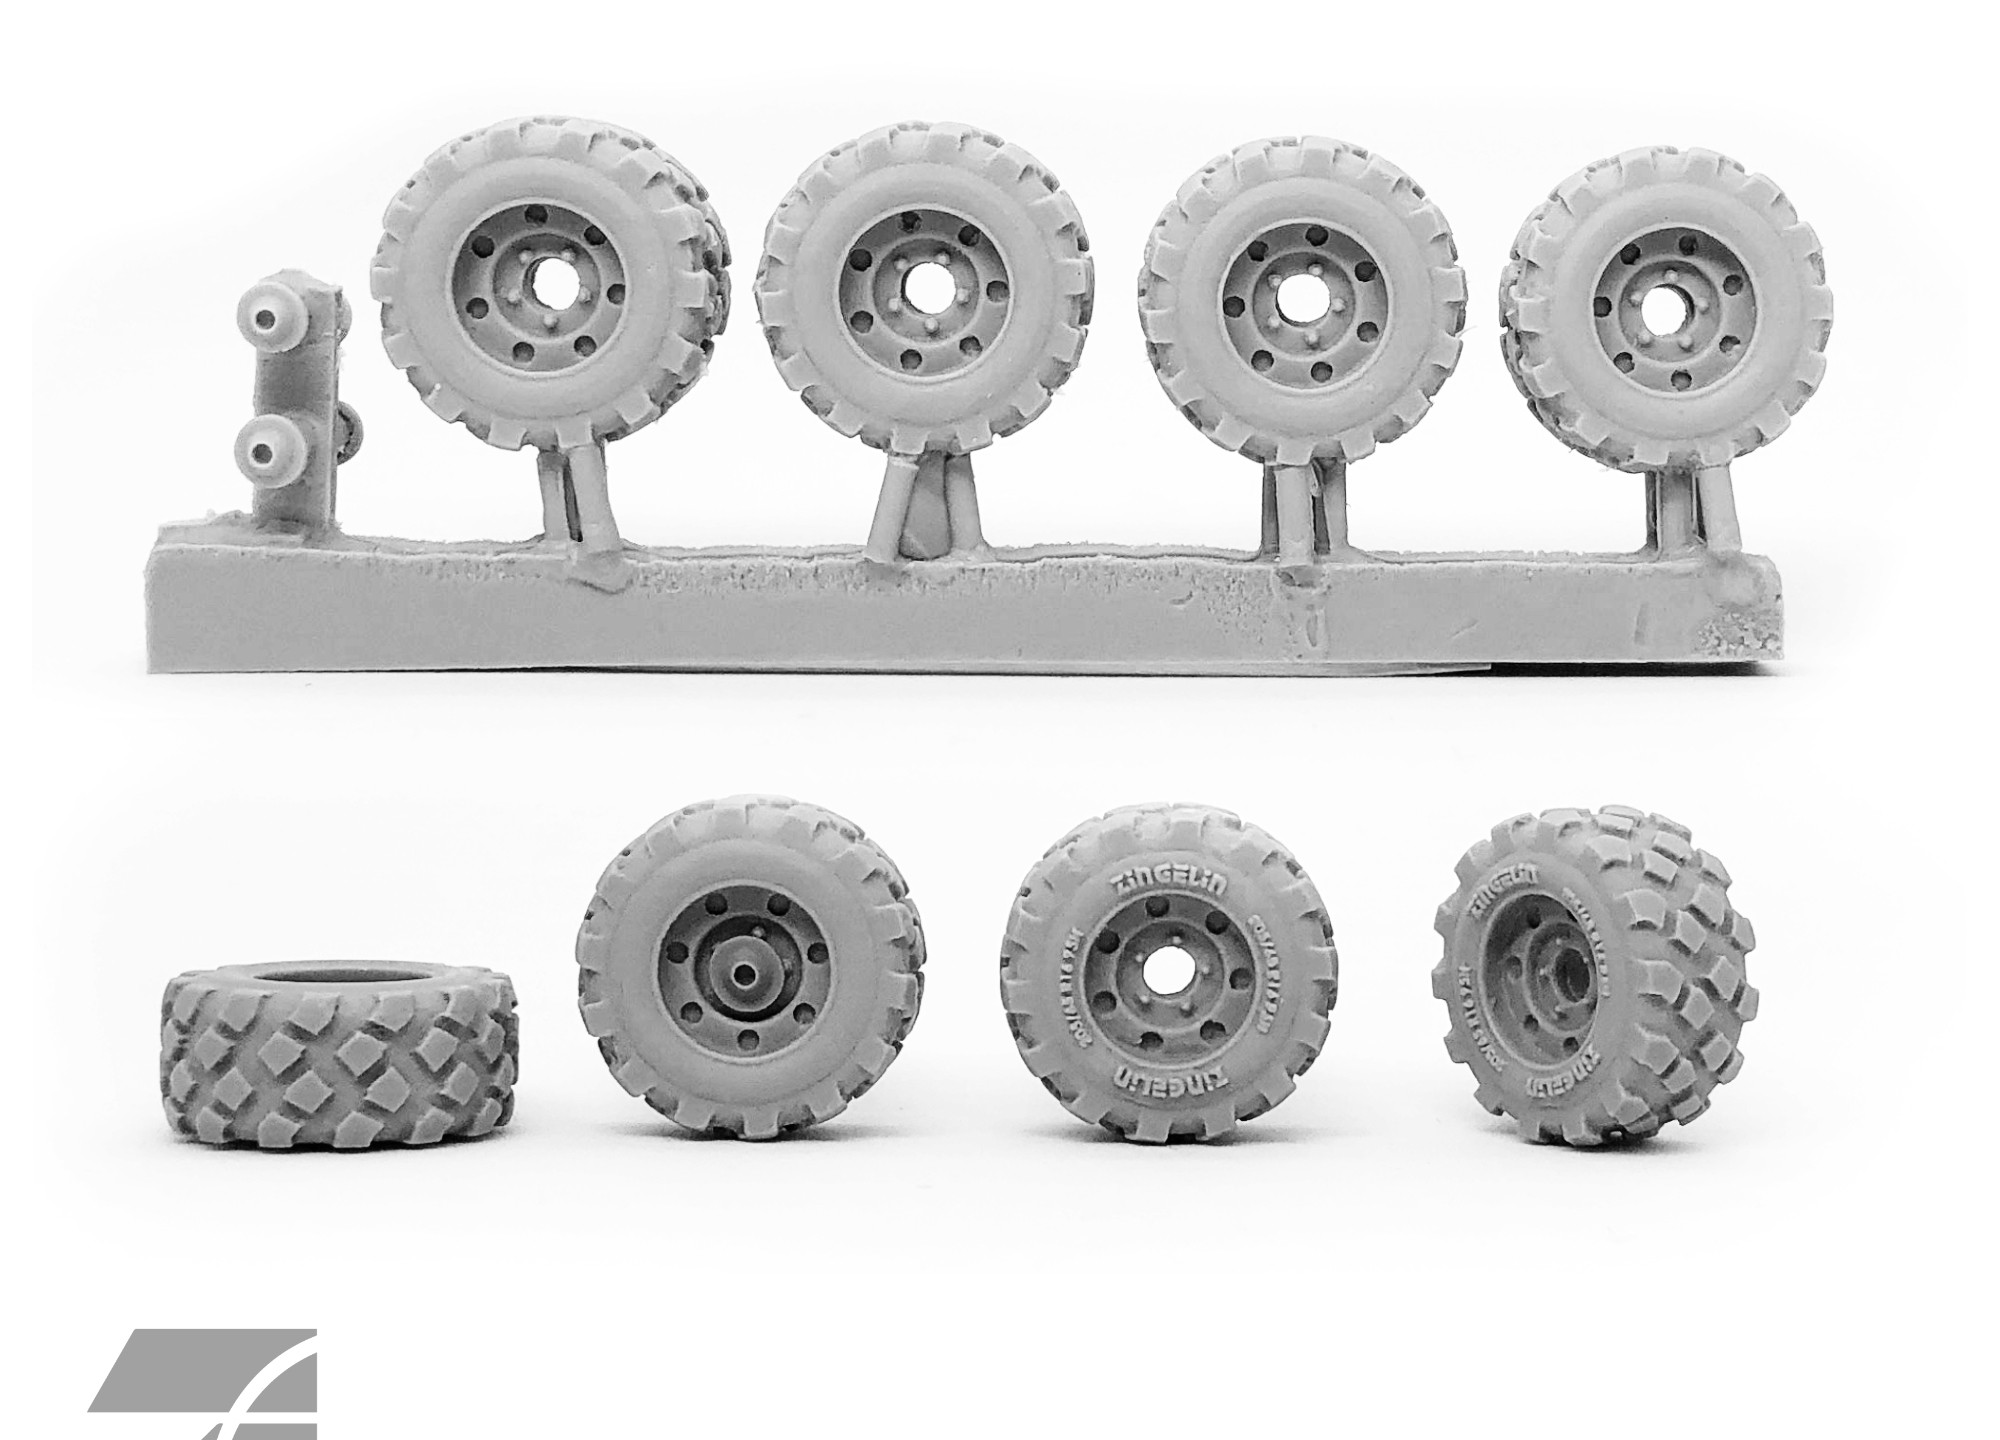 23mm Military